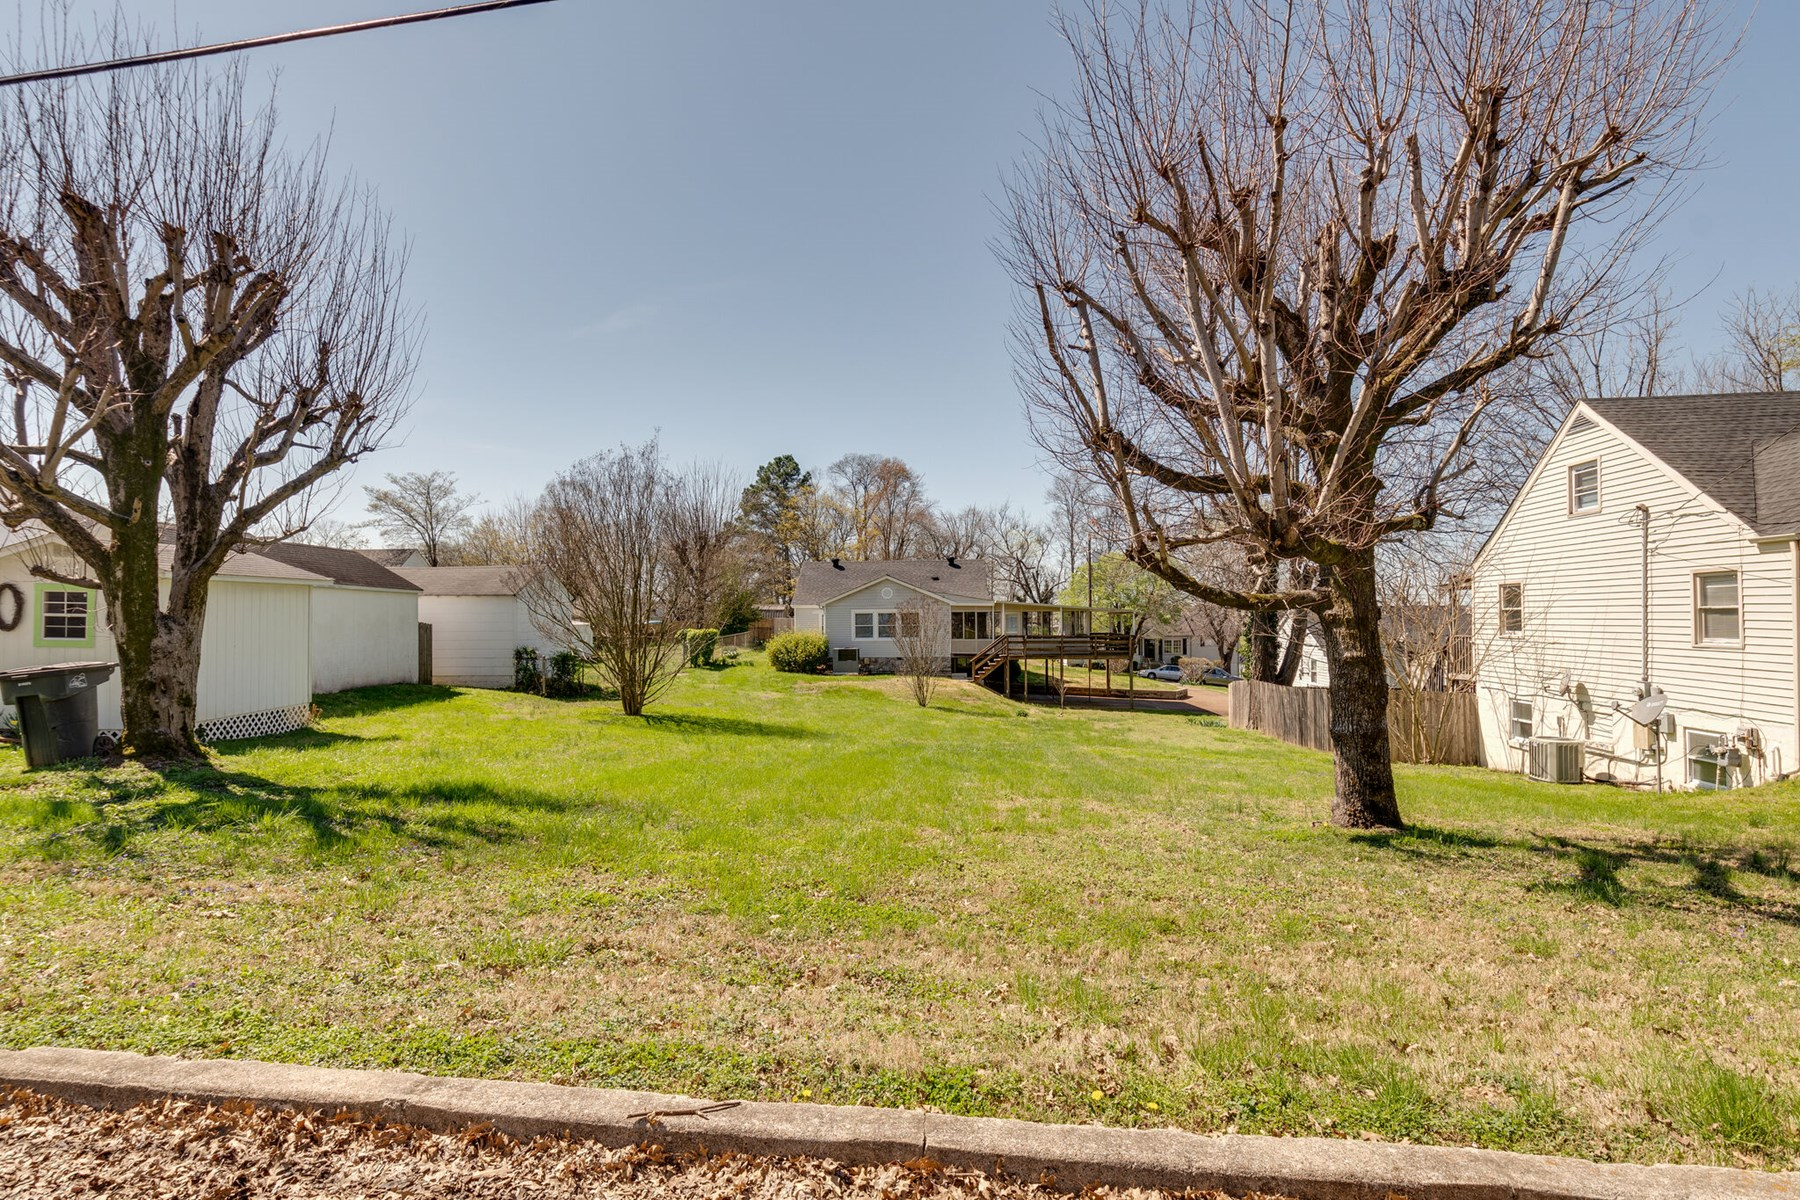 Residential Lot for Sale in Columbia, Tennessee